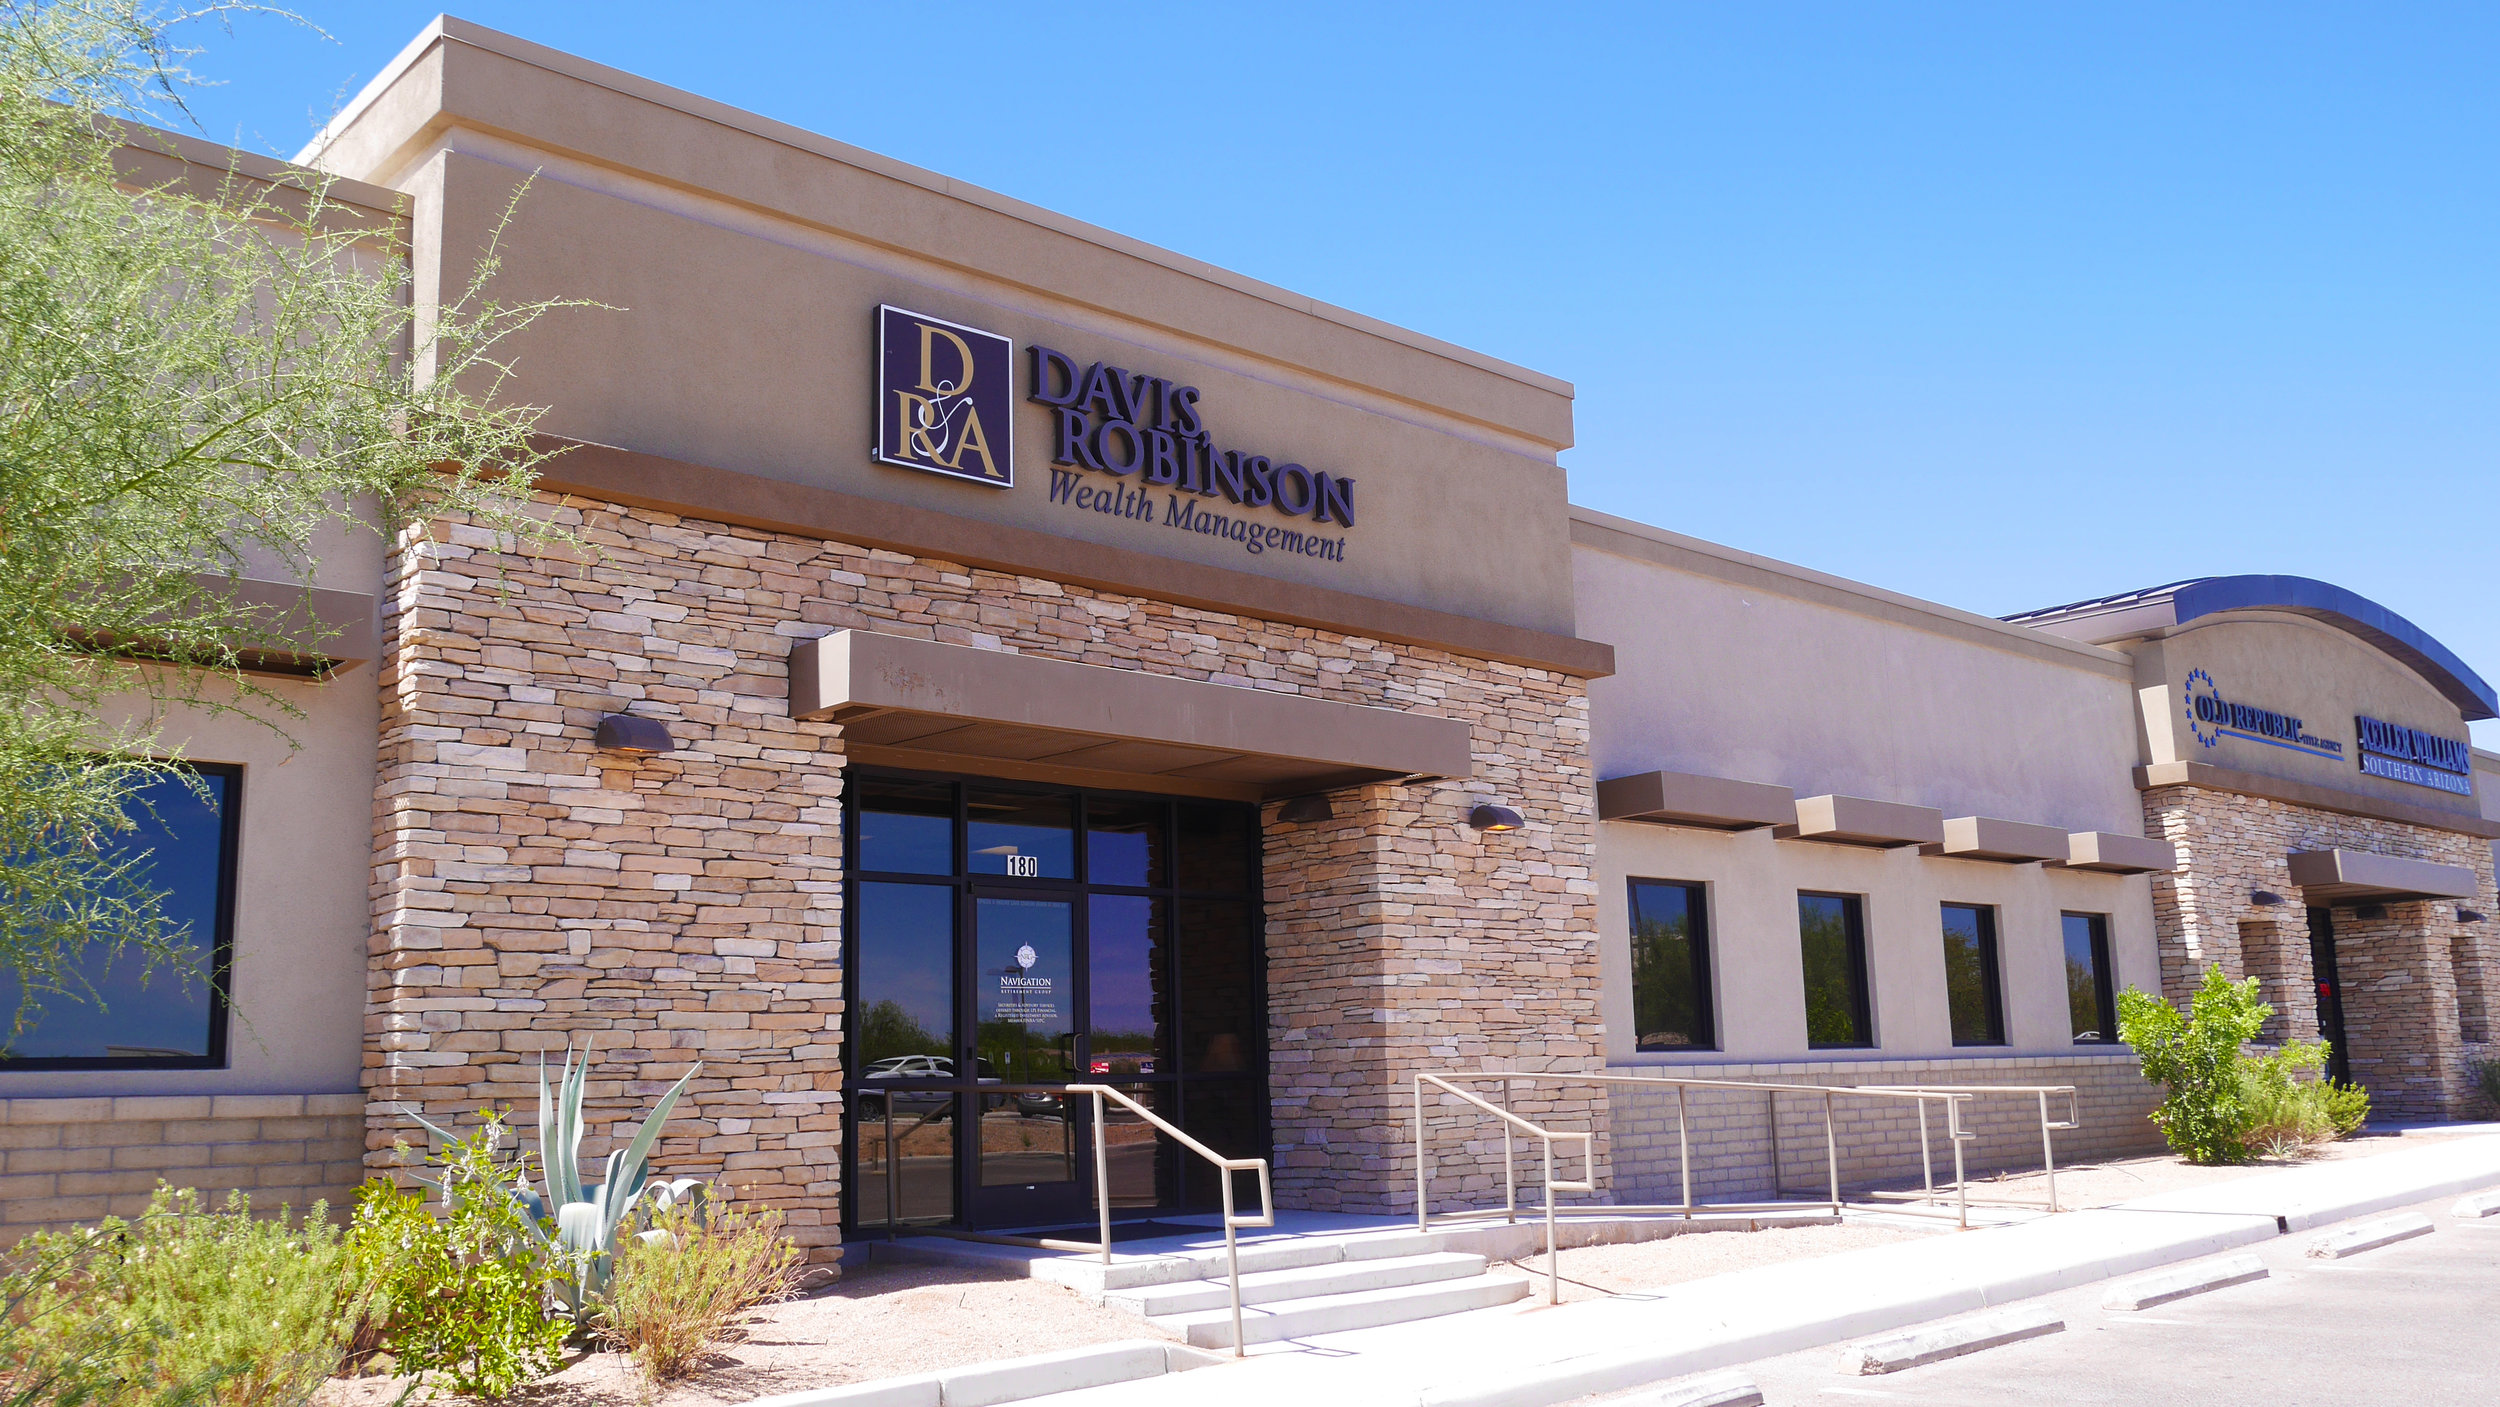 2506 E Vistoso Commerce Loop    4,675 SF of Class A Office Building